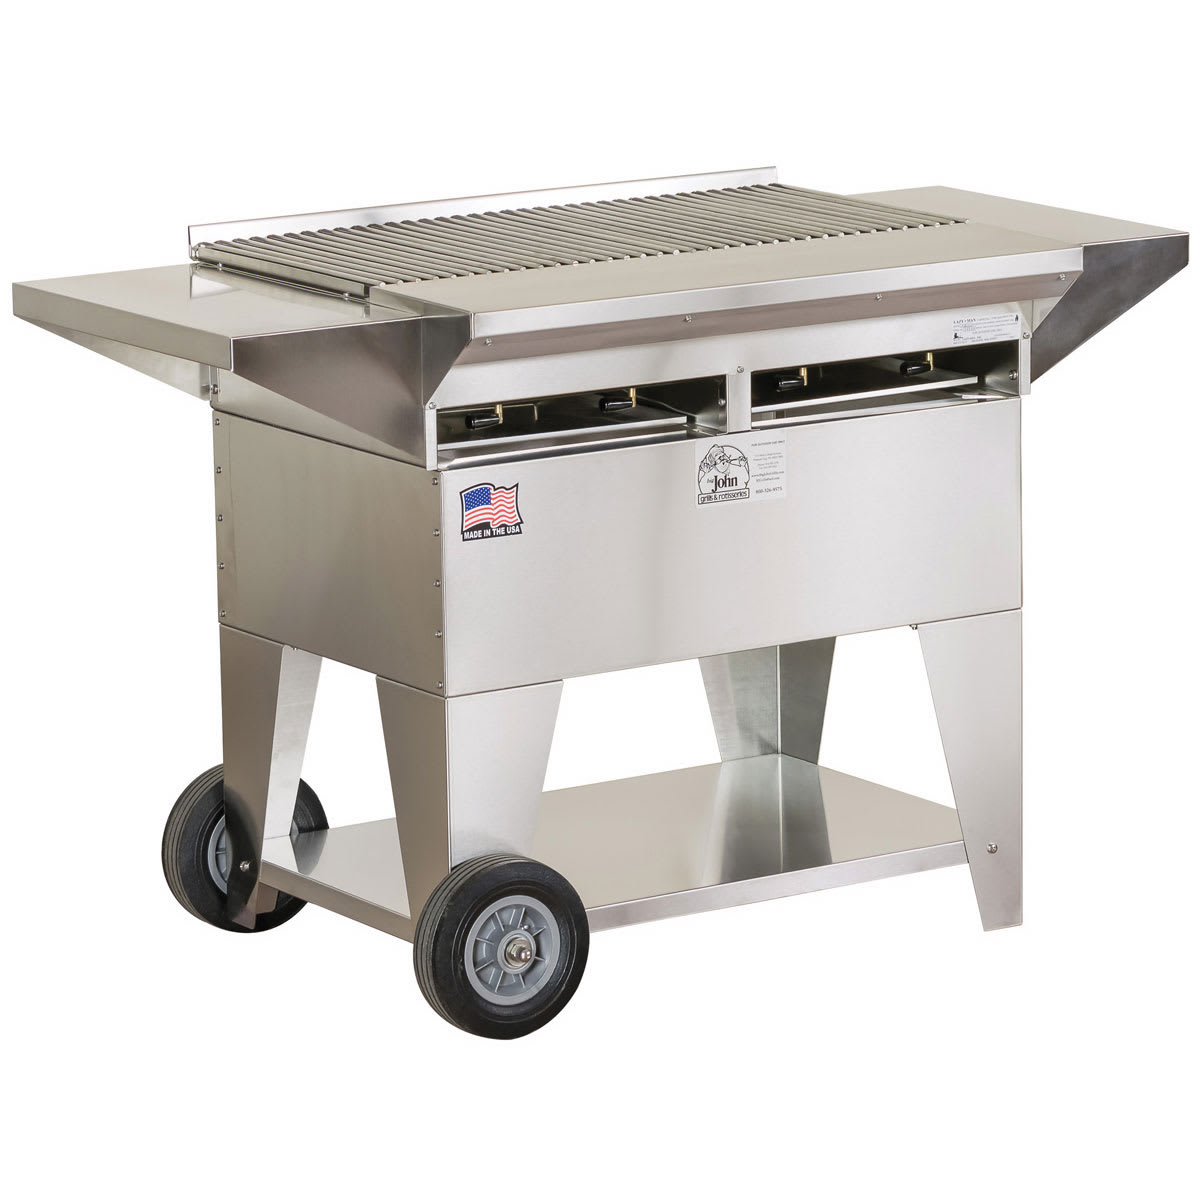 "Big Johns Grills & Rotisseries A2CC-SSE 32.5"" Mobile Gas Commercial Outdoor Grill w/ Multiple Heat Zones, LP"